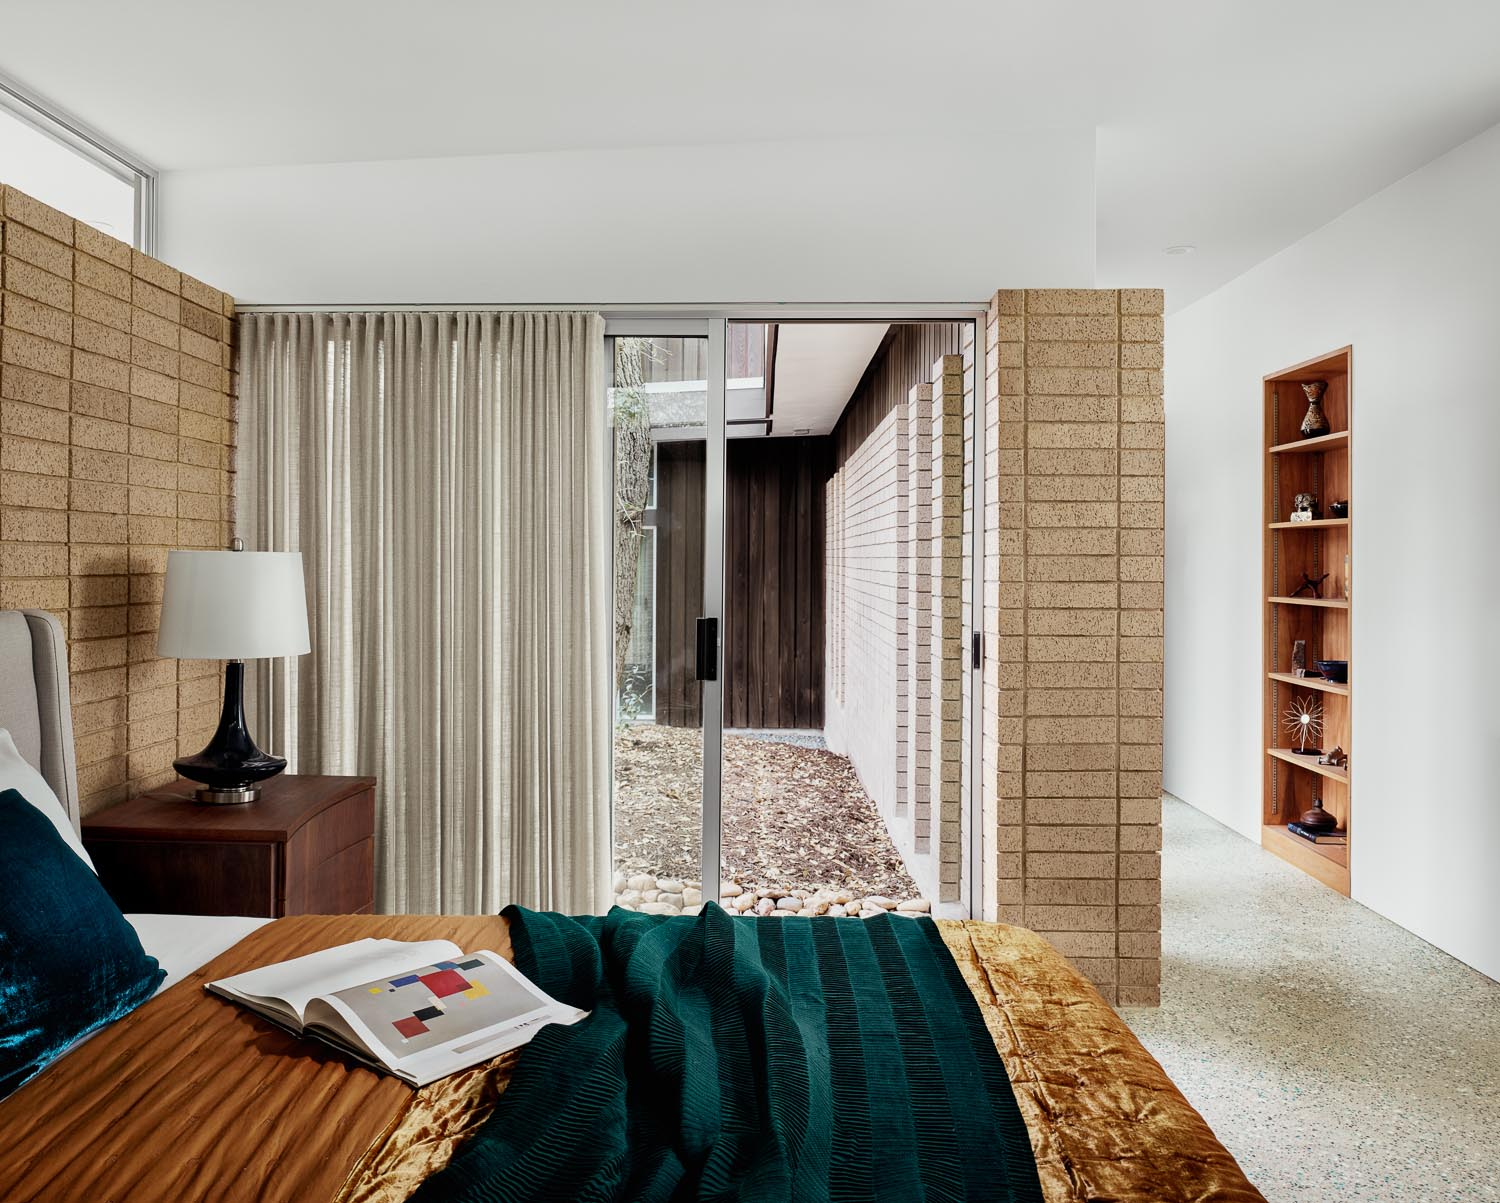 A sliding glass door in this mid-century modern inspired bedroom connects the space with the outdoors.